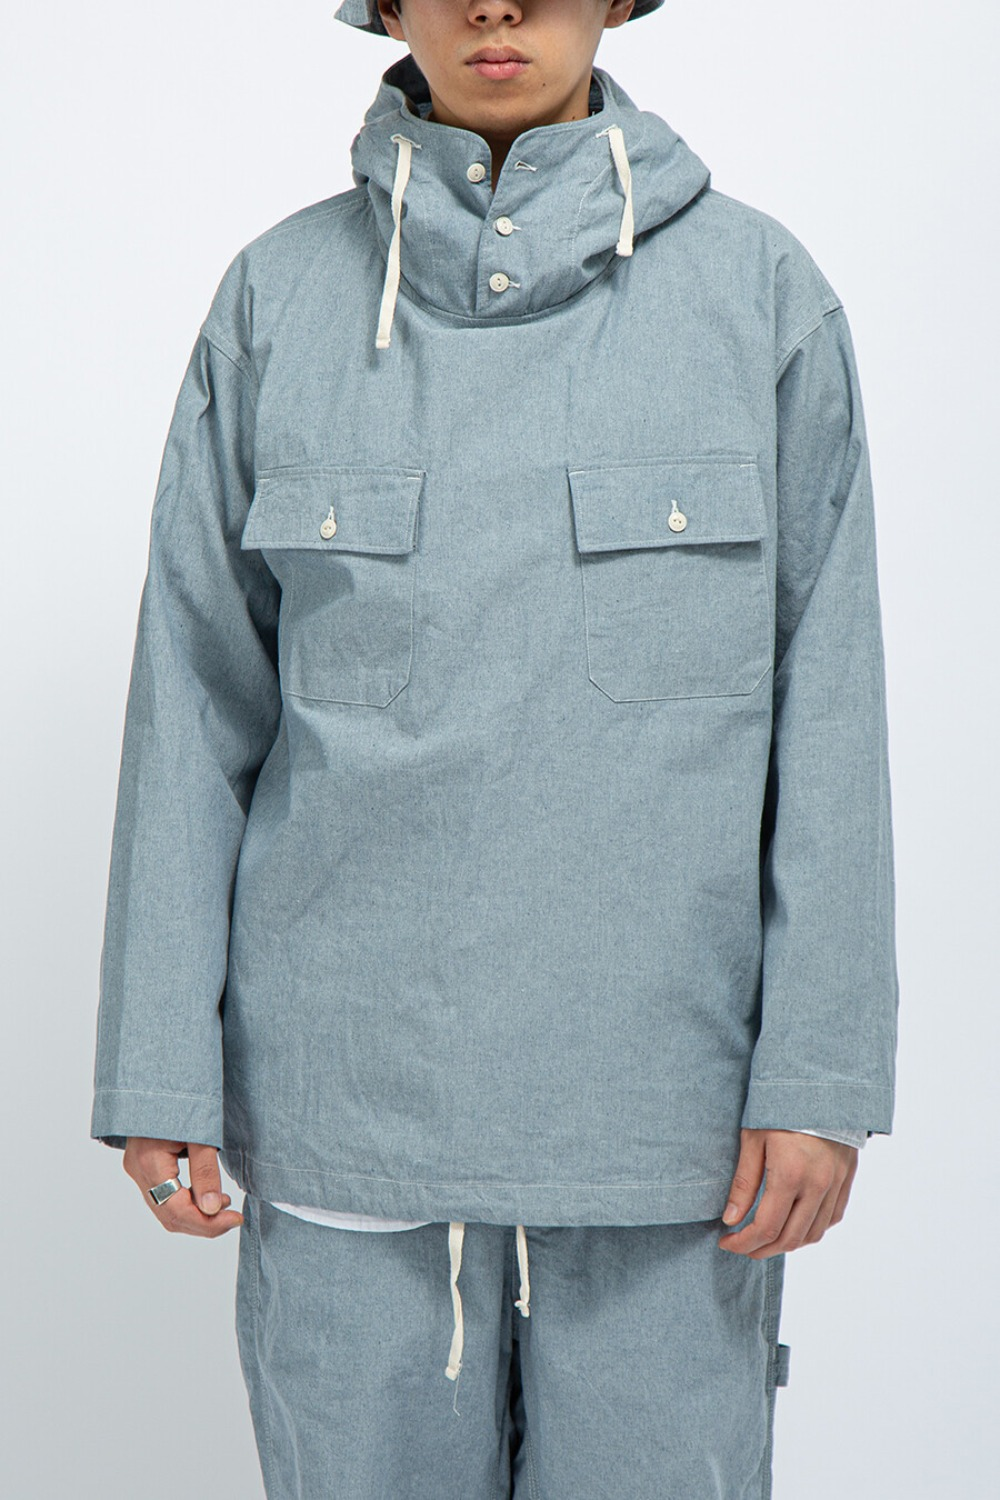 CAGOULE SHIRT BLUE UPCYCLED CHAMBRAY